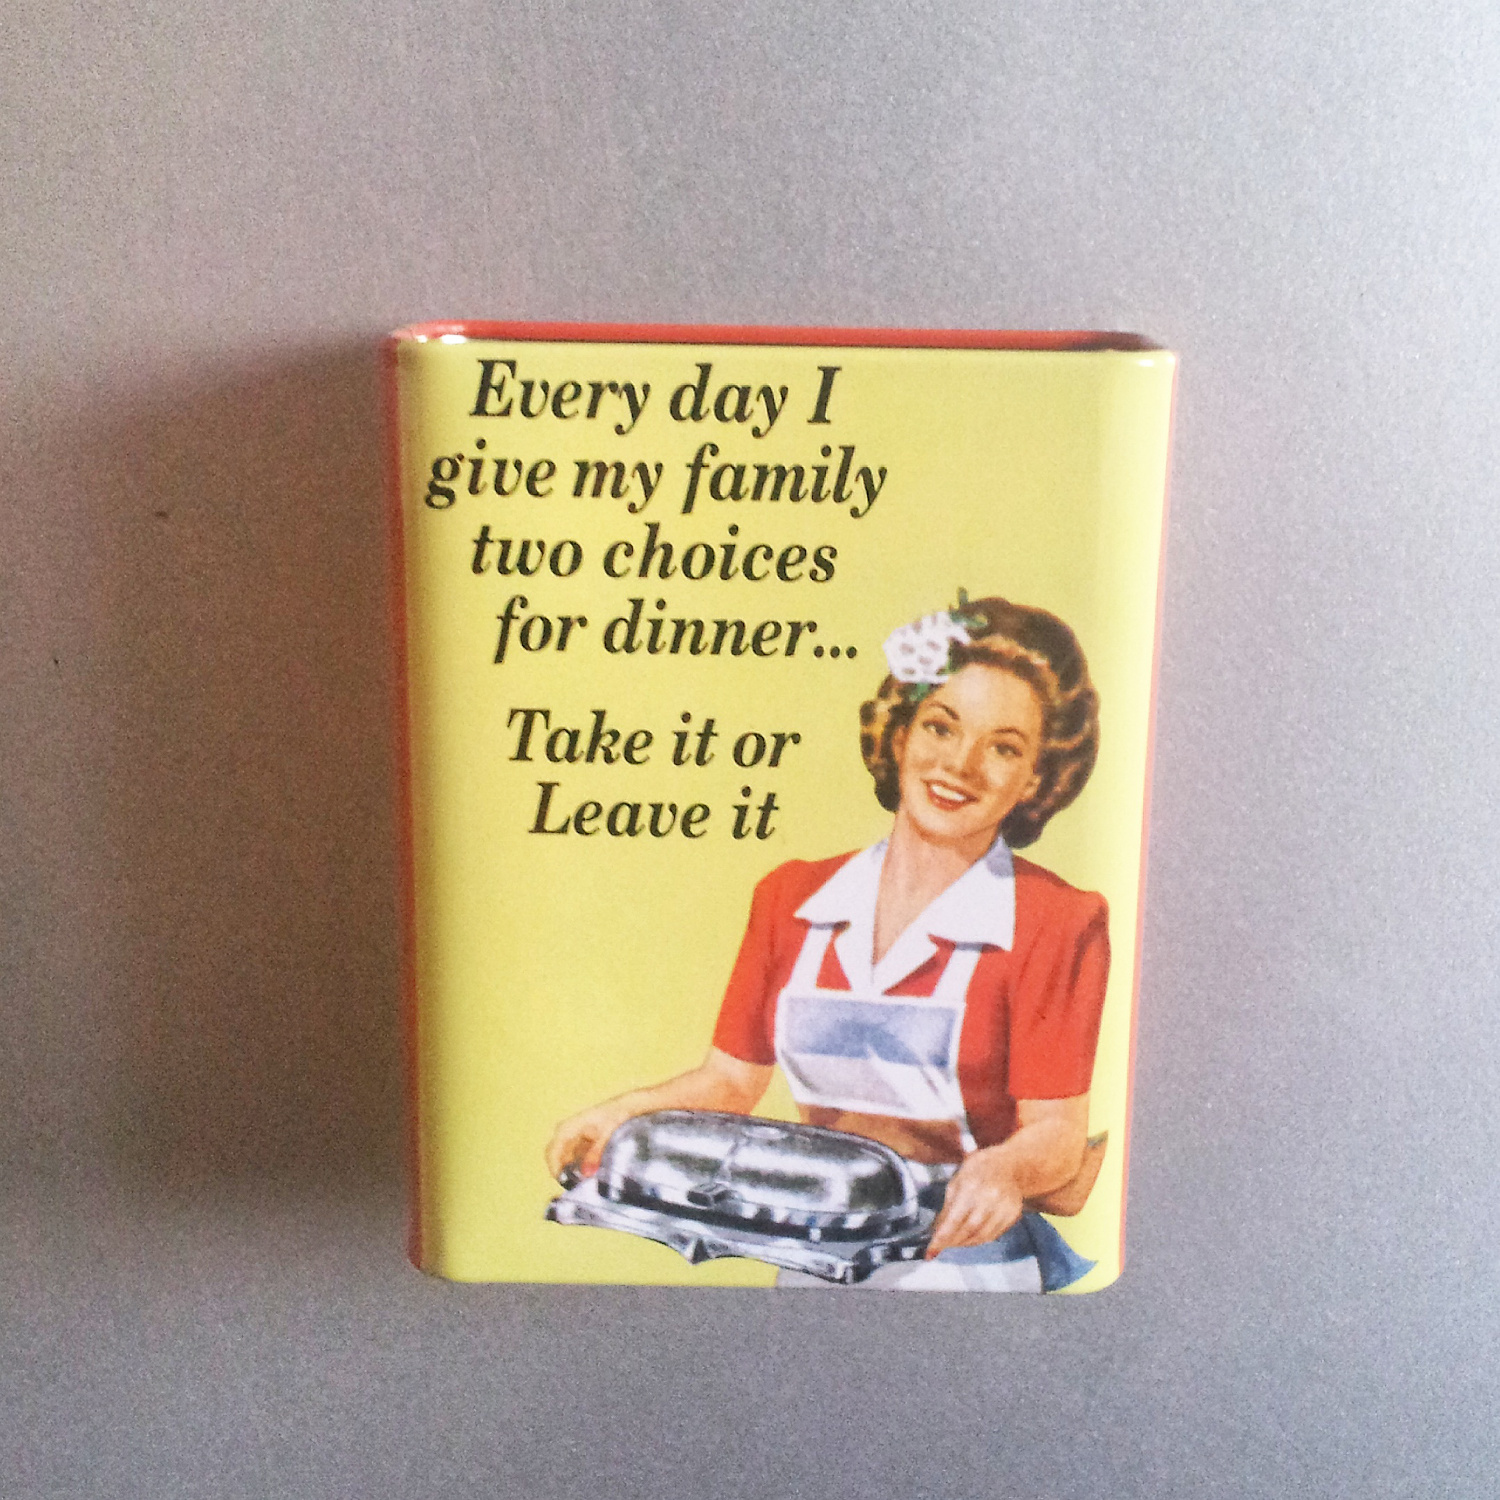 fridge magnet UK - dinner options